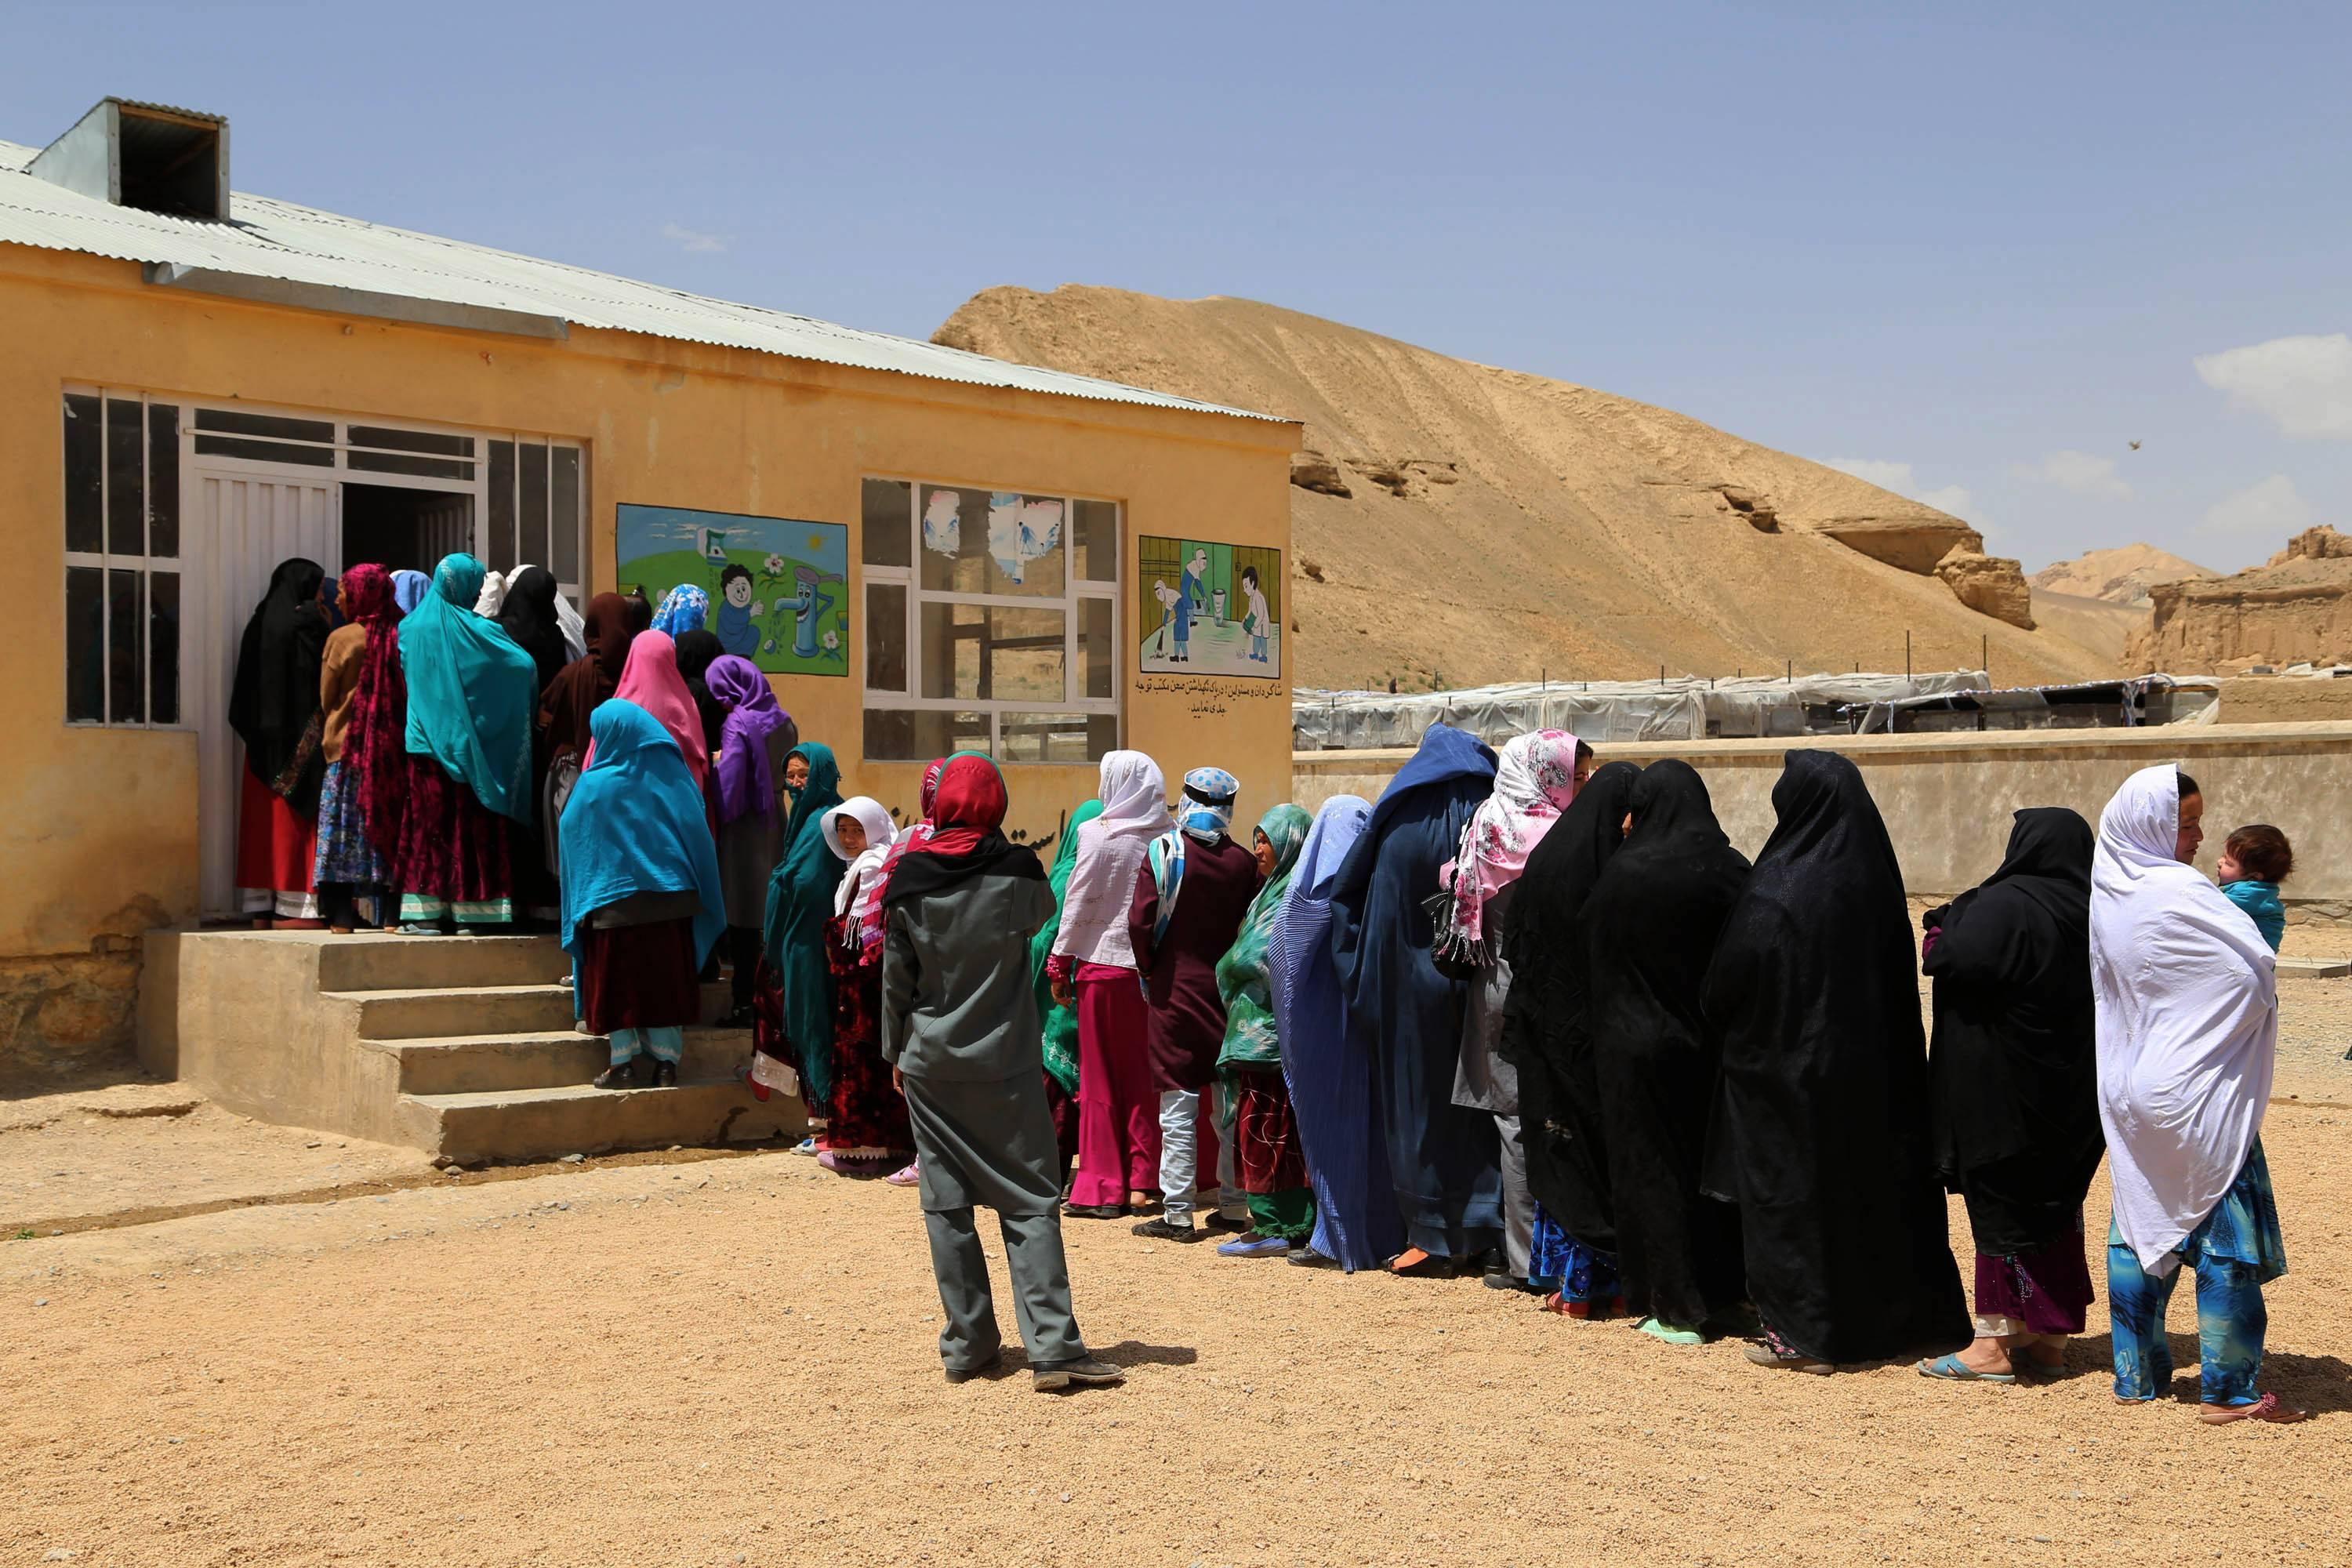 Afghan women line up to cast their votes, outside a polling station in Bamiyan, Afghanistan, Saturday, June 14. Despite Taliban threats of violence, many Afghans vow to cast ballots in Saturday's presidential runoff vote with hopes that whoever replaces Hamid Karzai will be able to provide security and stability after international forces wind down their combat mission at the end of this year.